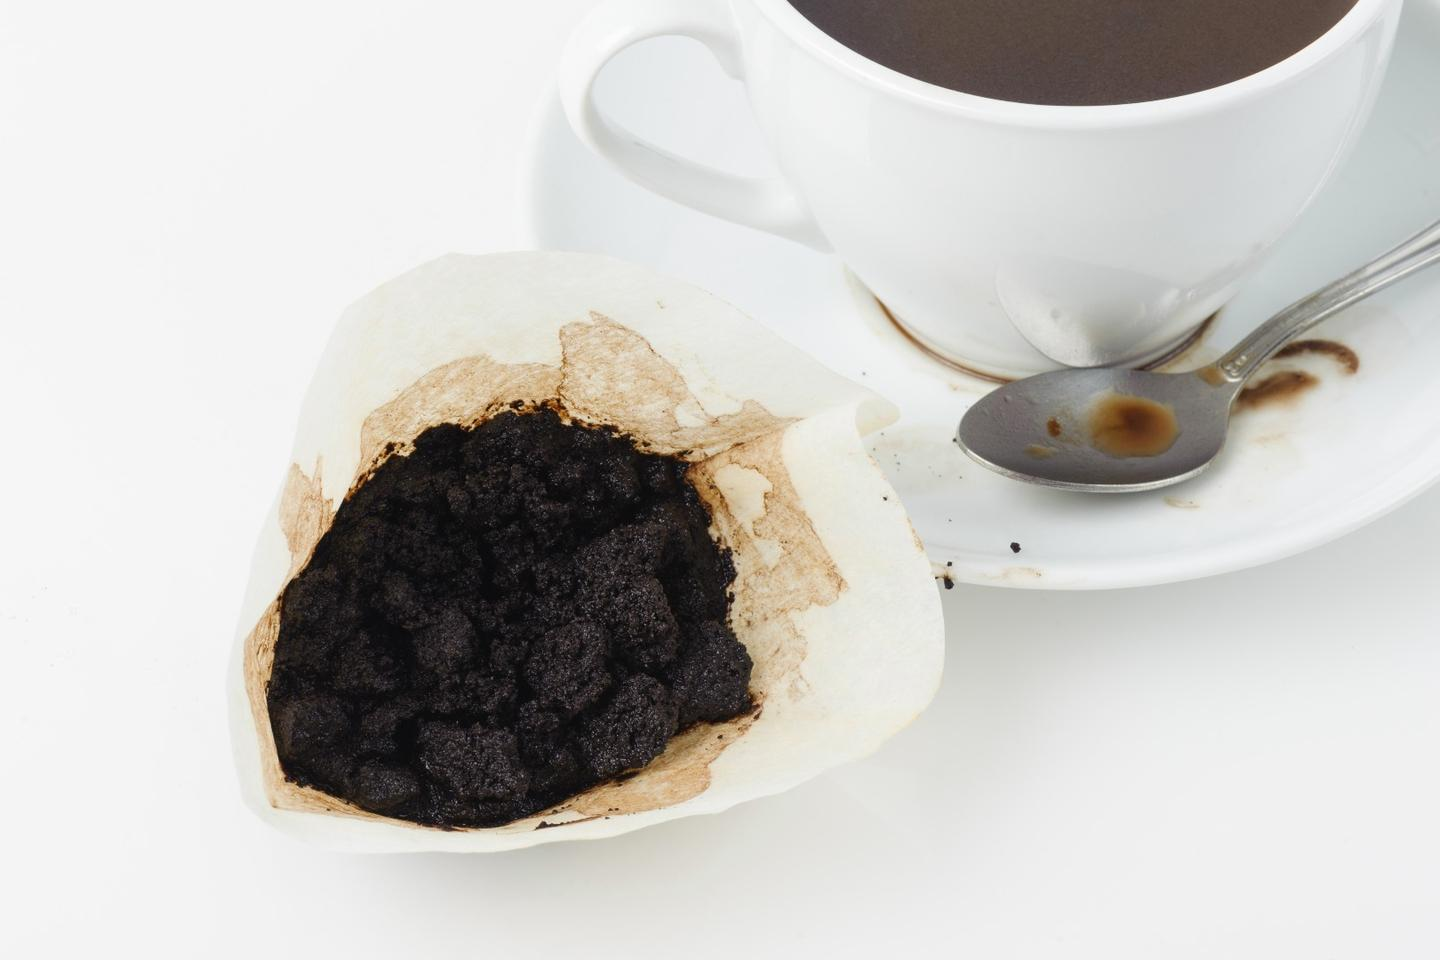 There's now yet another use for used coffee grounds like these